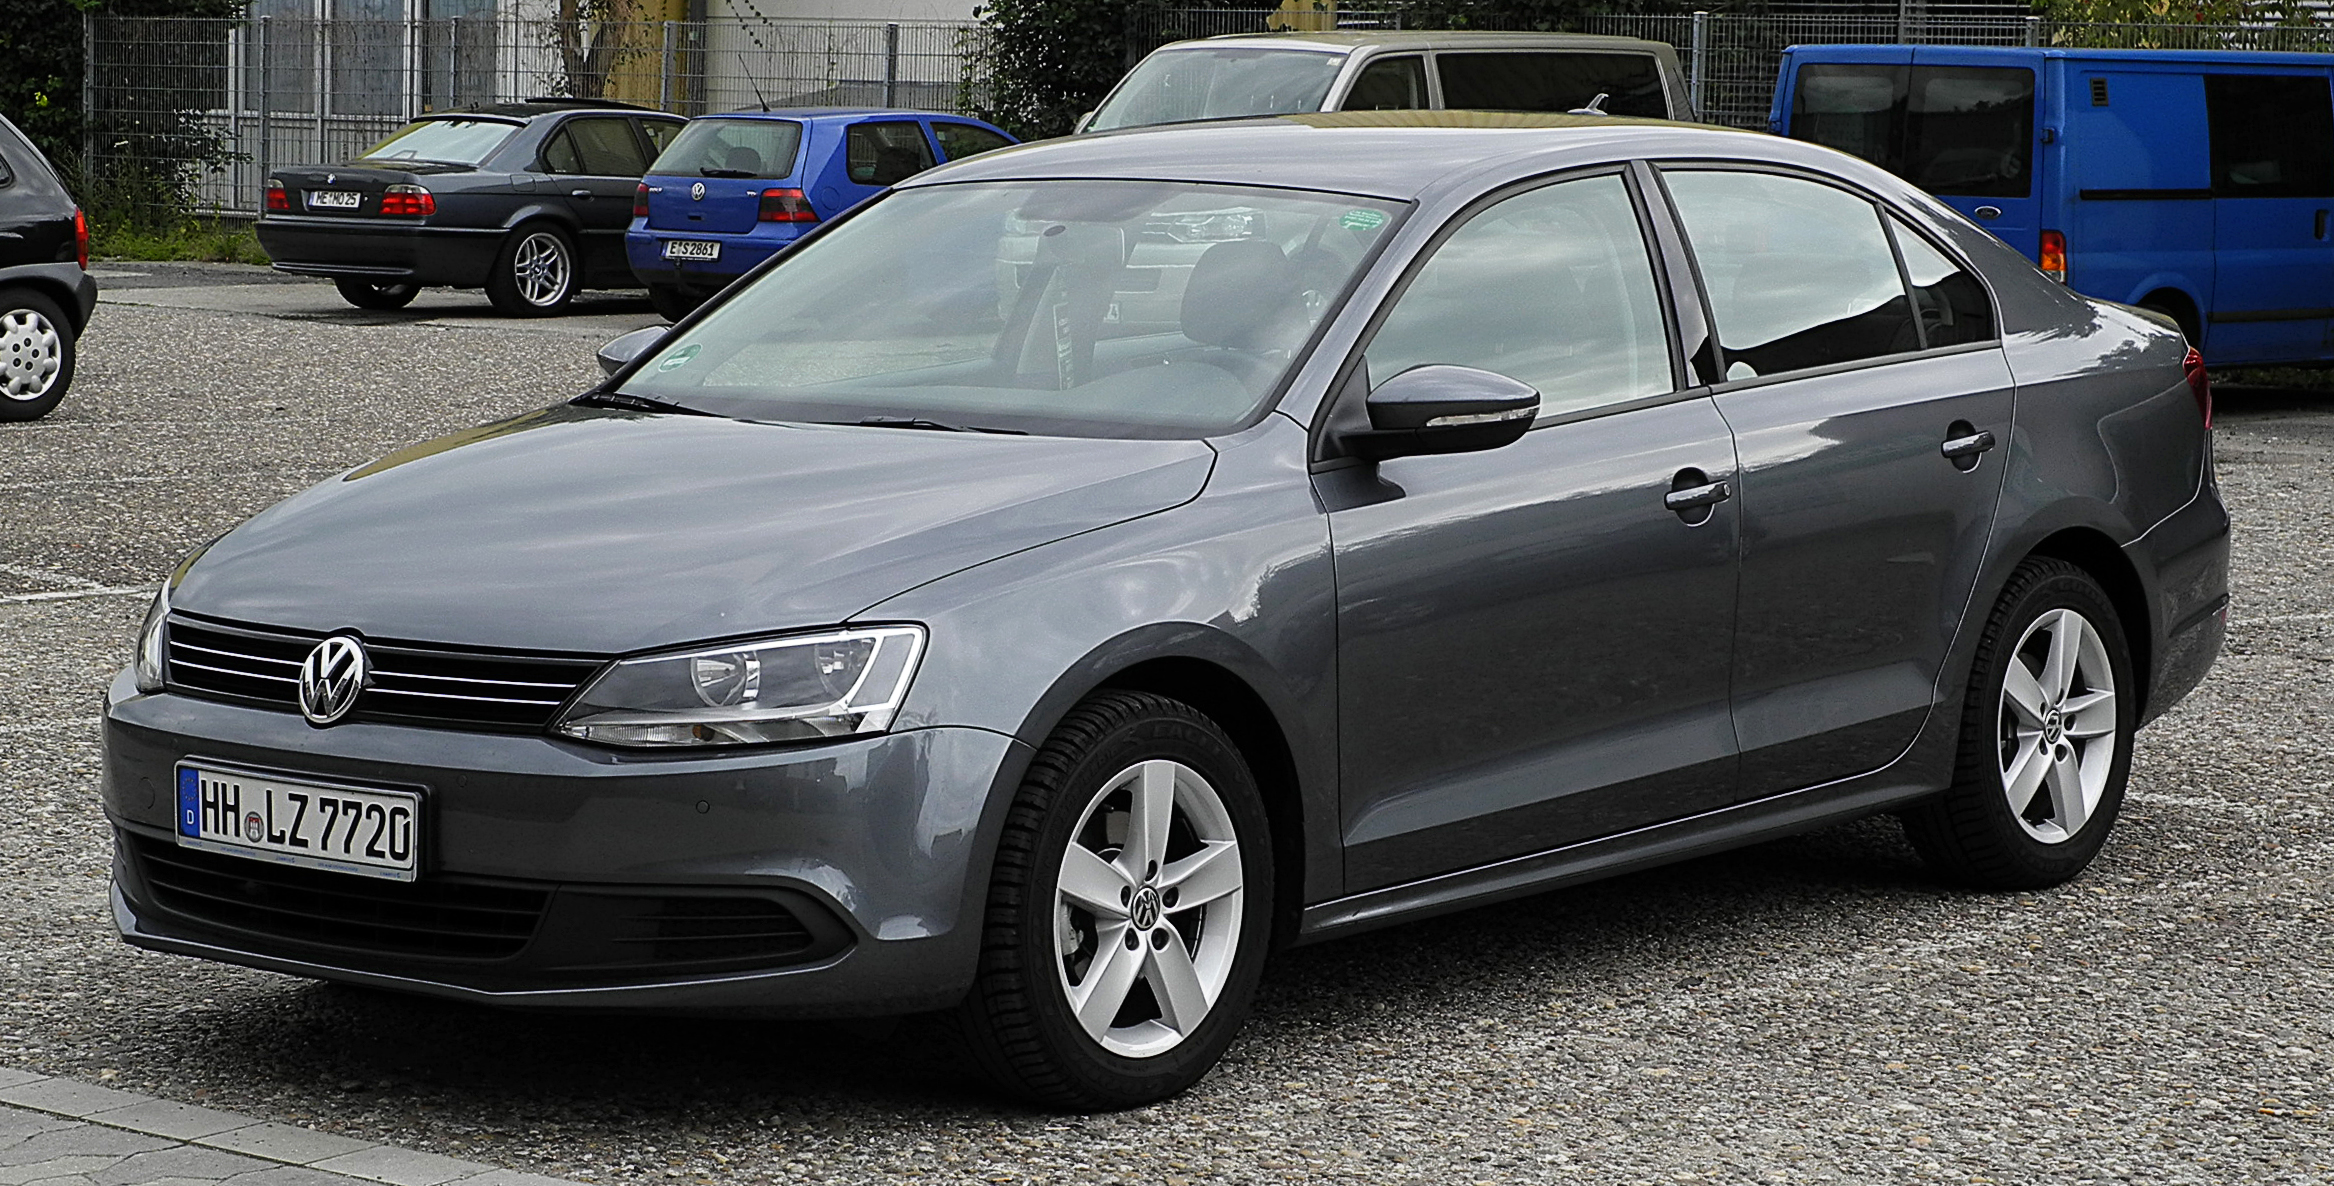 Volkswagen Jetta 1.6 2011 photo - 2